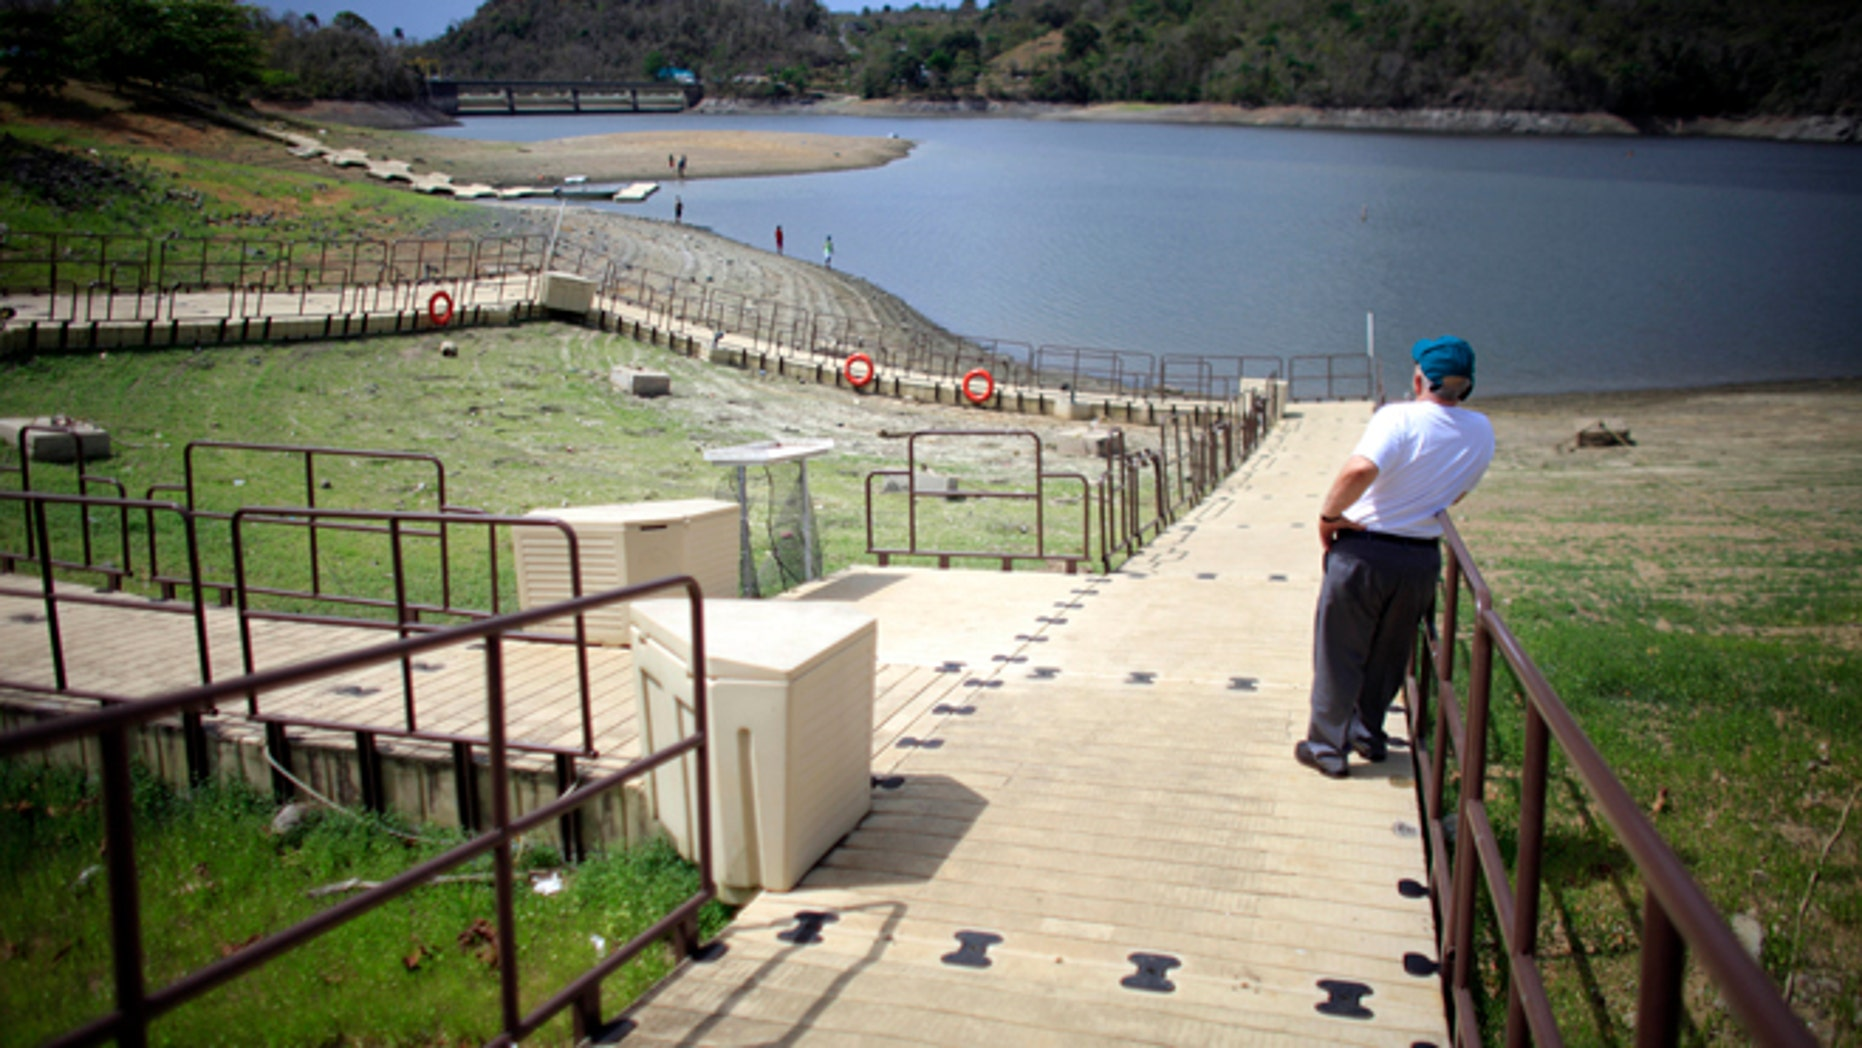 A man stands on a floating dock, laying on the unusually dry banks of the La Plata reservoir in Toa Alta, Puerto Rico, Wednesday, May 13, 2015. Puerto Rico imposed strict water-rationing measures Wednesday and Gov. Alejandro Garcia Padilla recently declared a state of emergency given the increasingly dry conditions. (AP Photo/Ricardo Arduengo)